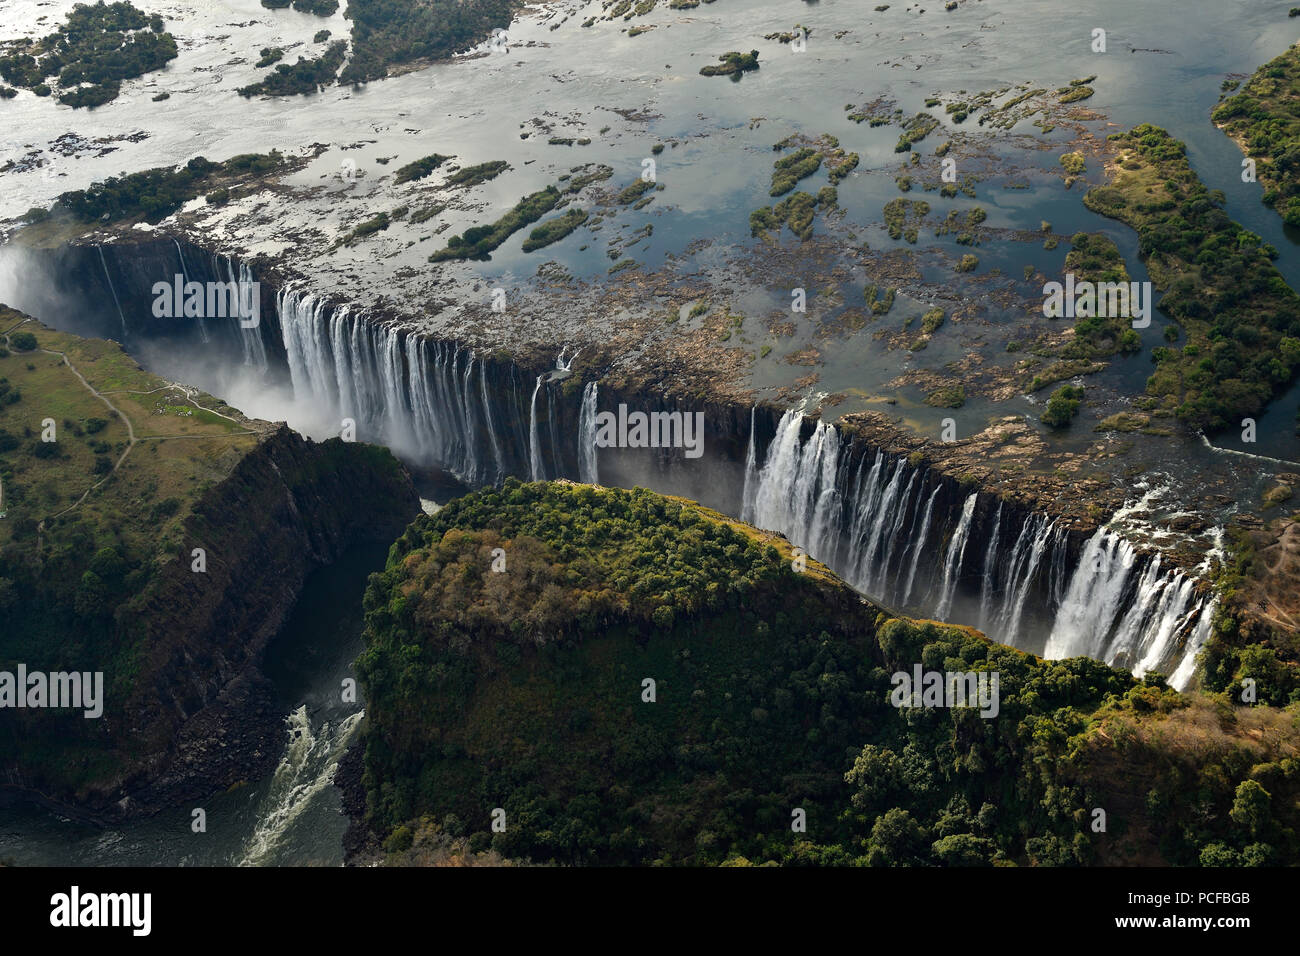 Aerial view, Victoria Falls, Zimbabwe, Africa - Stock Image